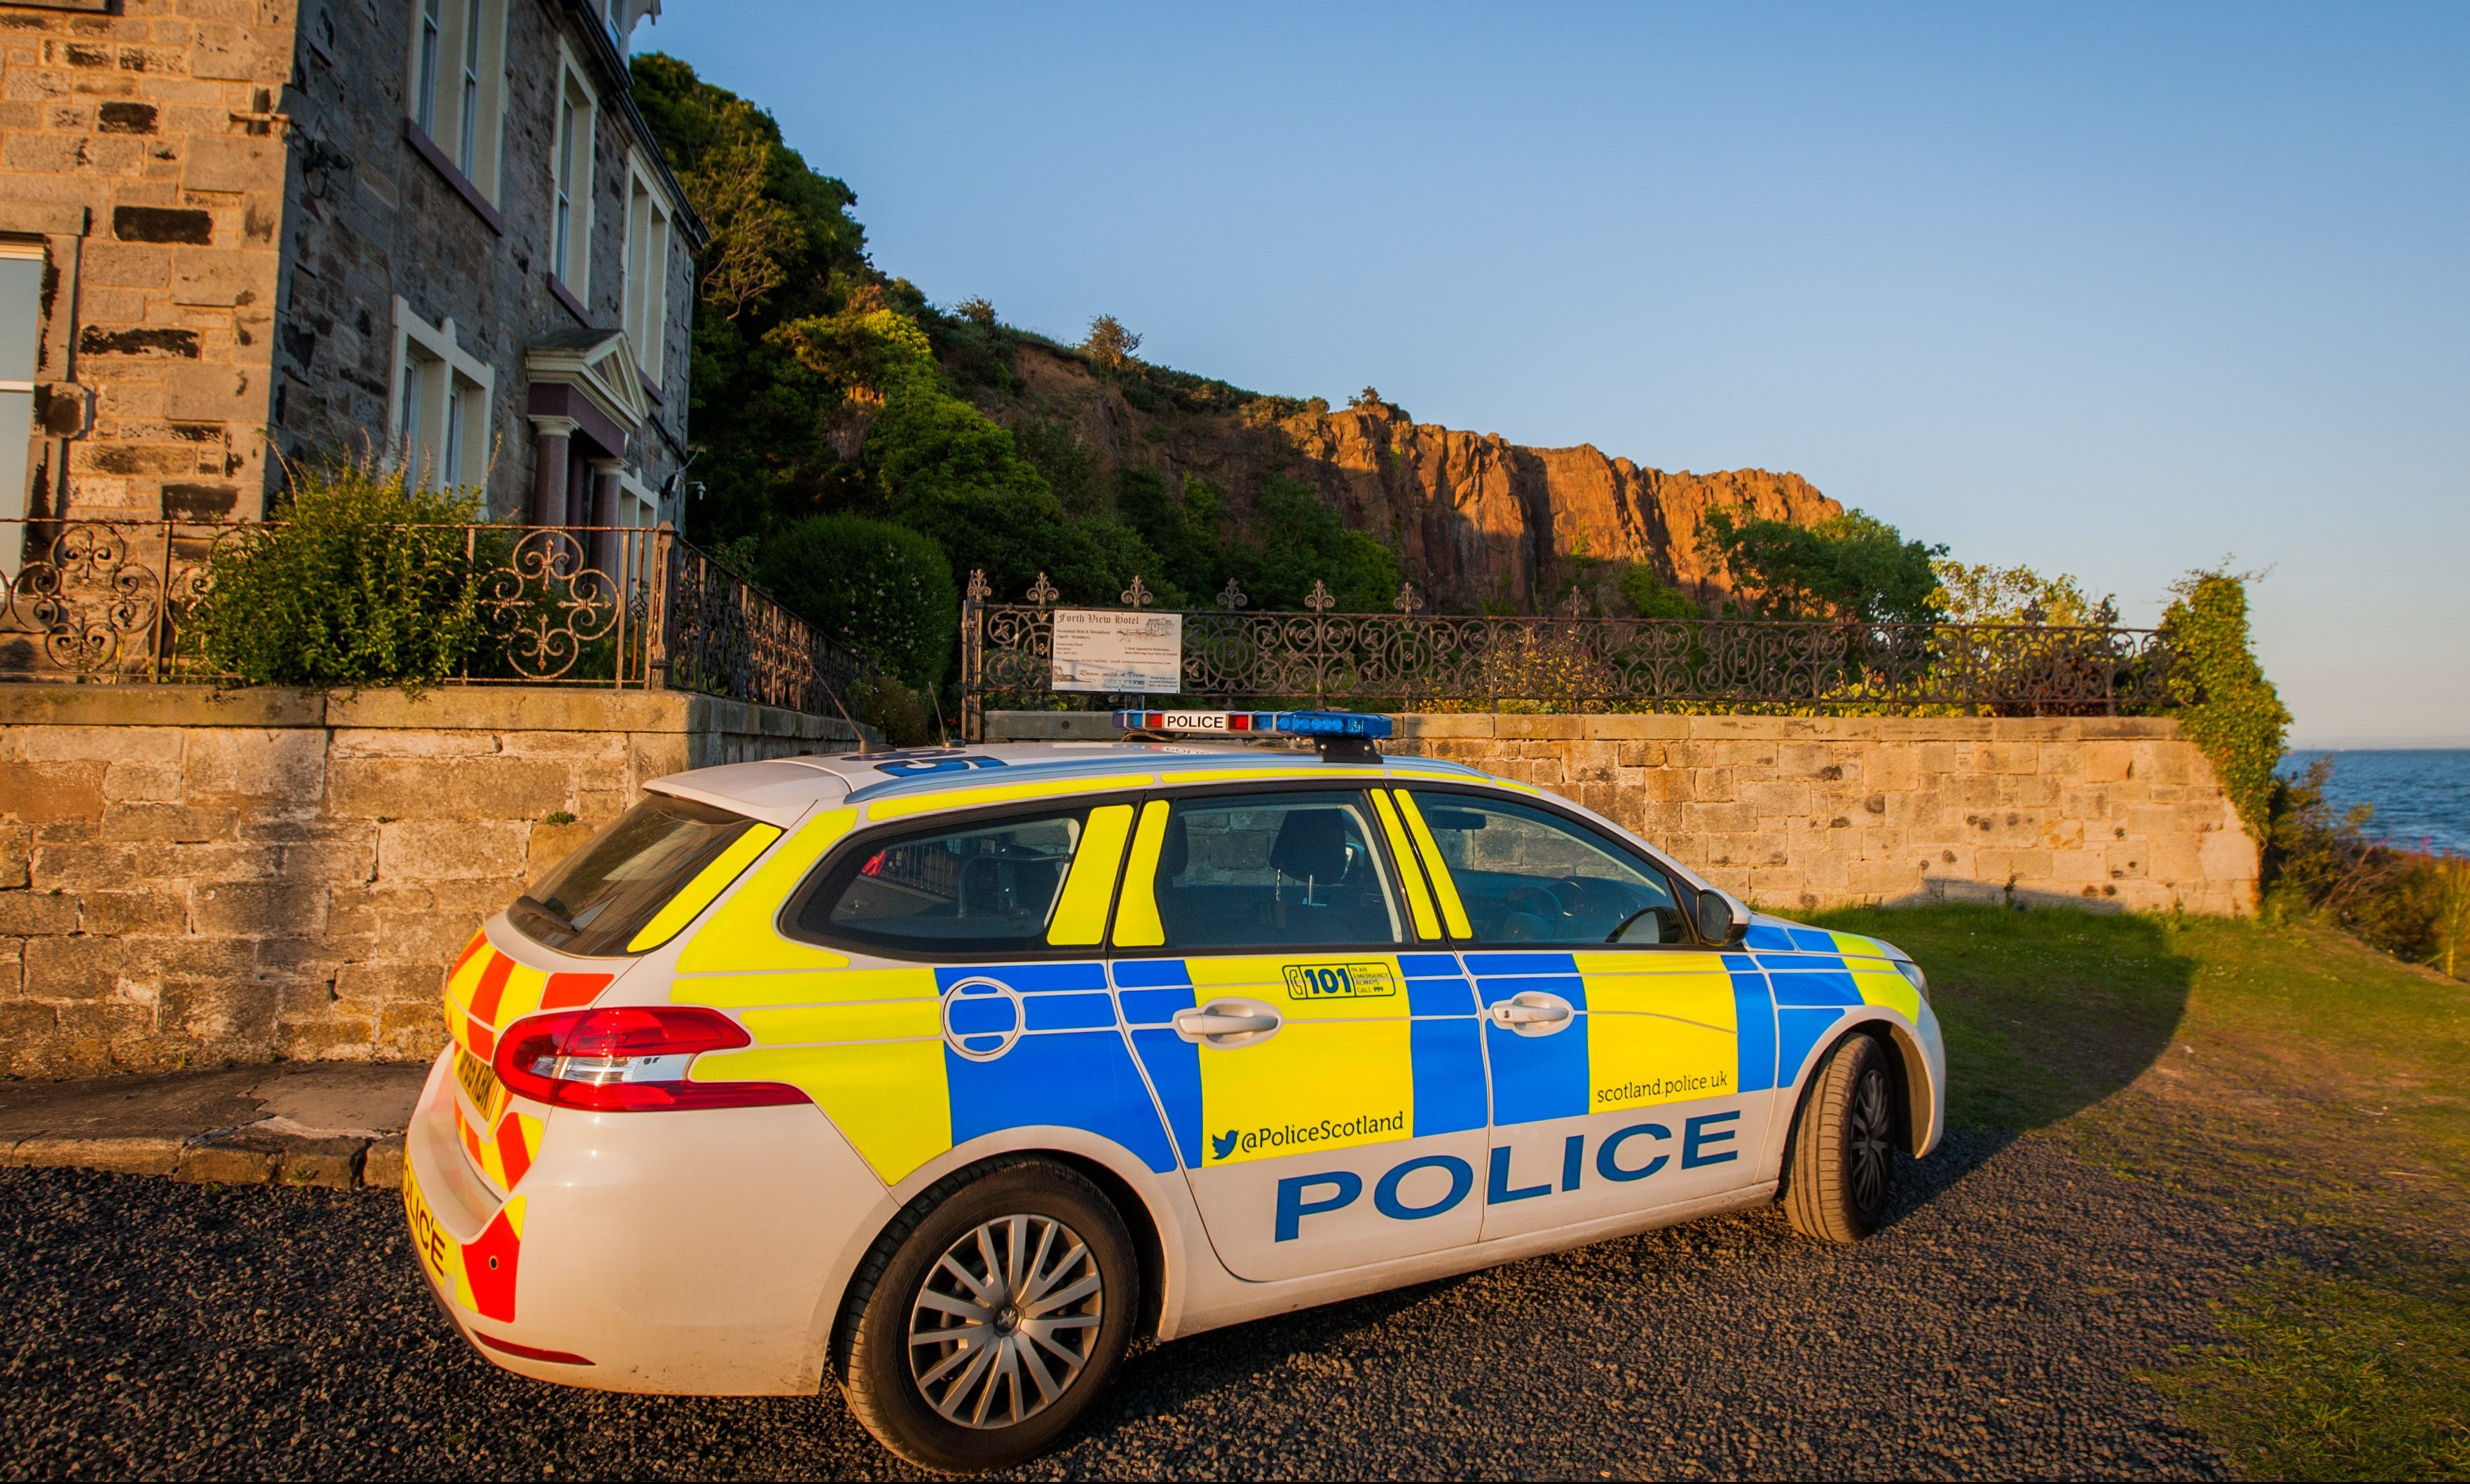 Police at the scene in Hawkcraig Point, Aberdour